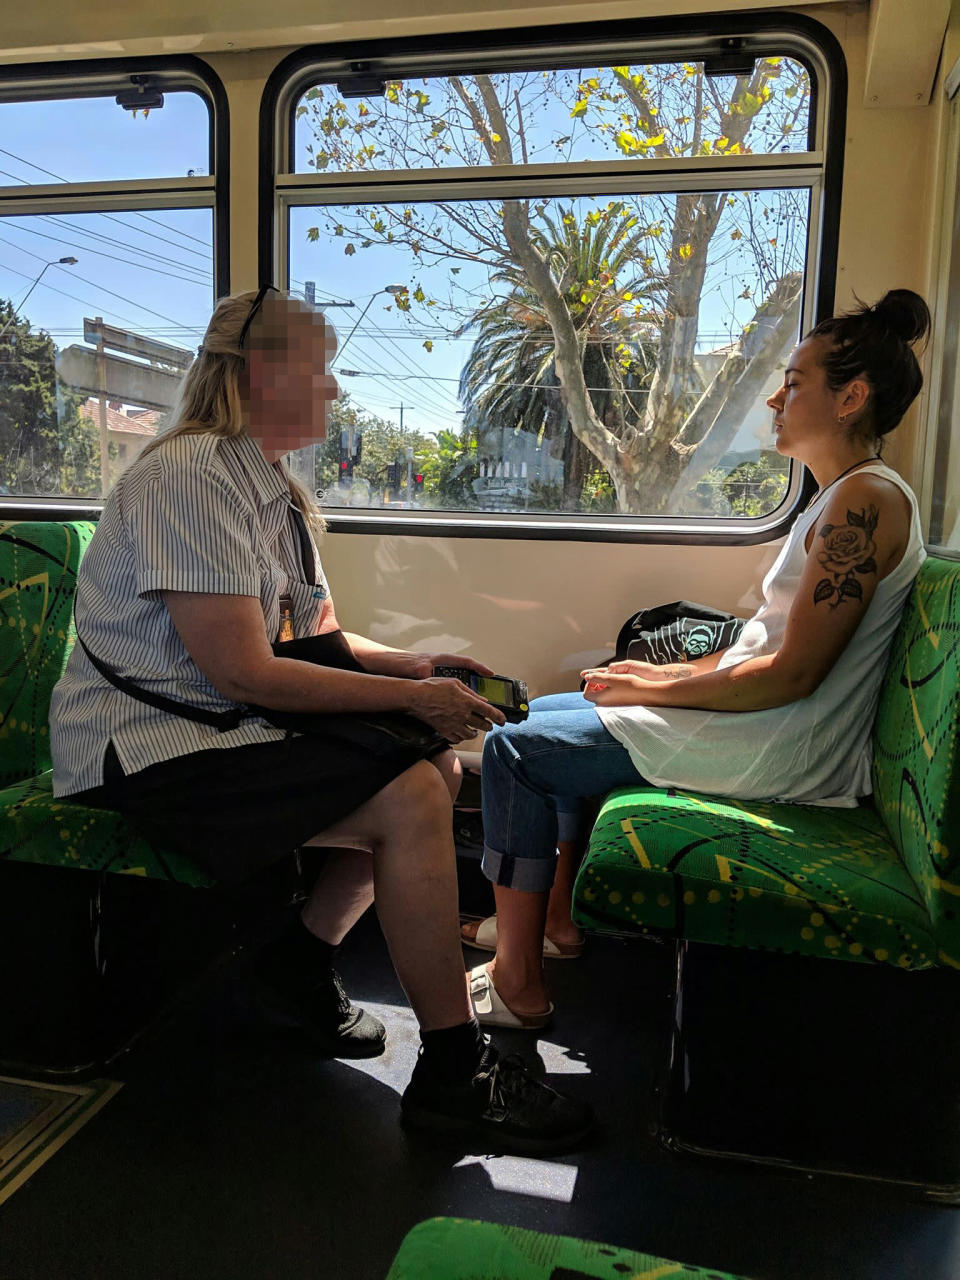 Highly amused commuters watched on as the ticket inspector tried to get Steph Athanasopoulos' attention. Source: Supplied